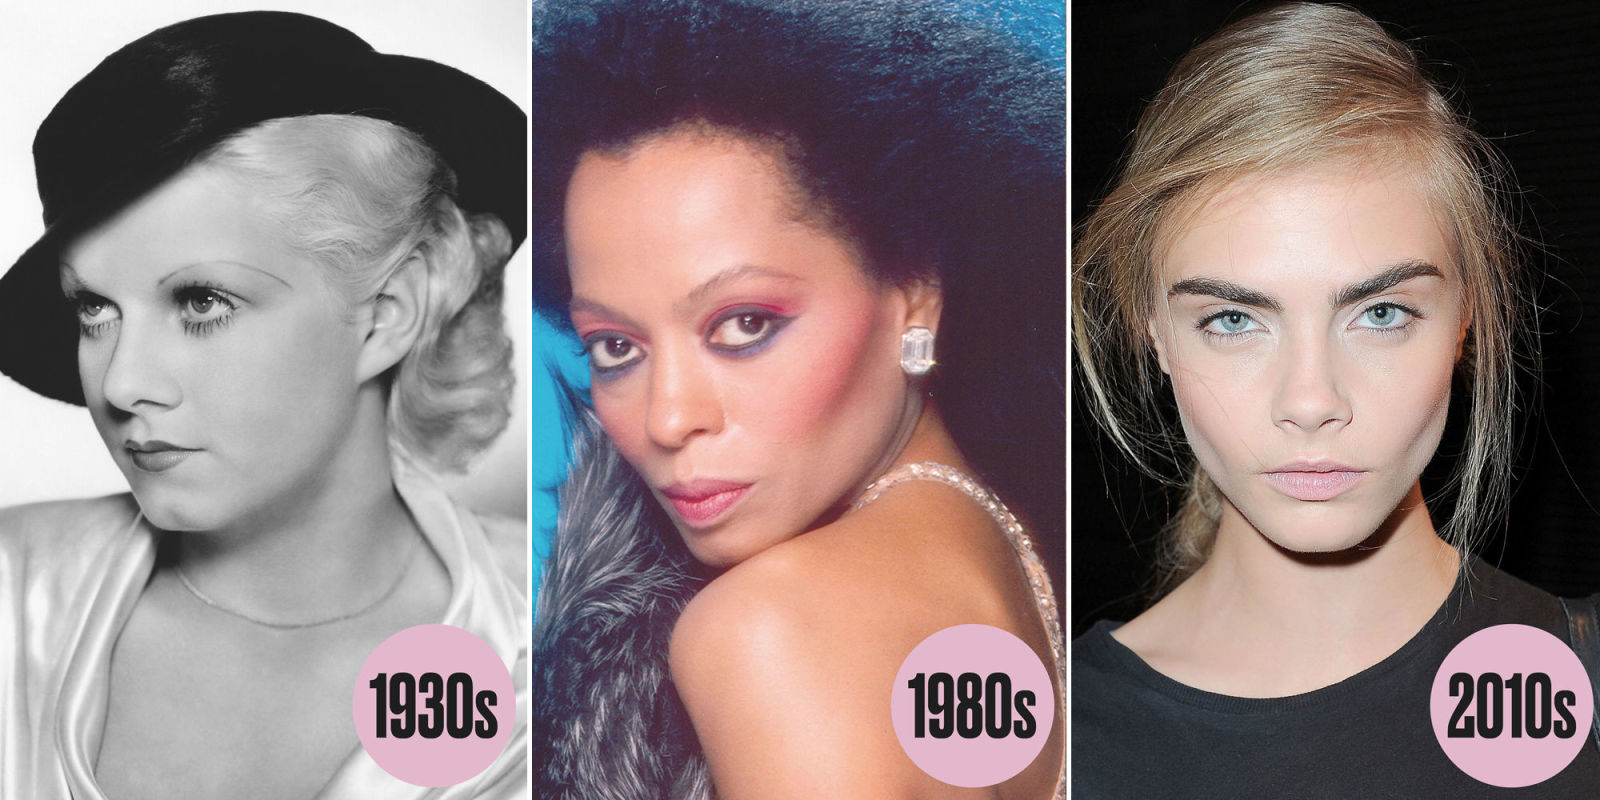 Eye Makeup Trends Through The Years